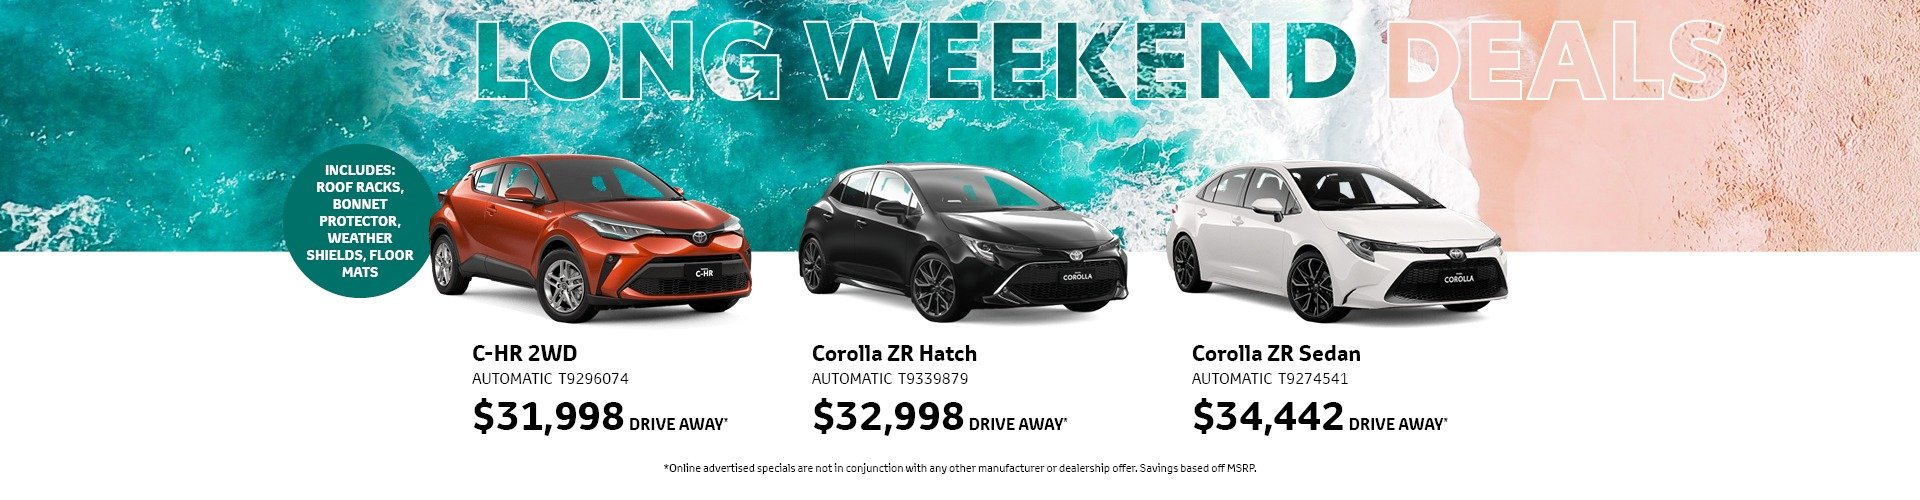 cardiff toyota long weekend deals